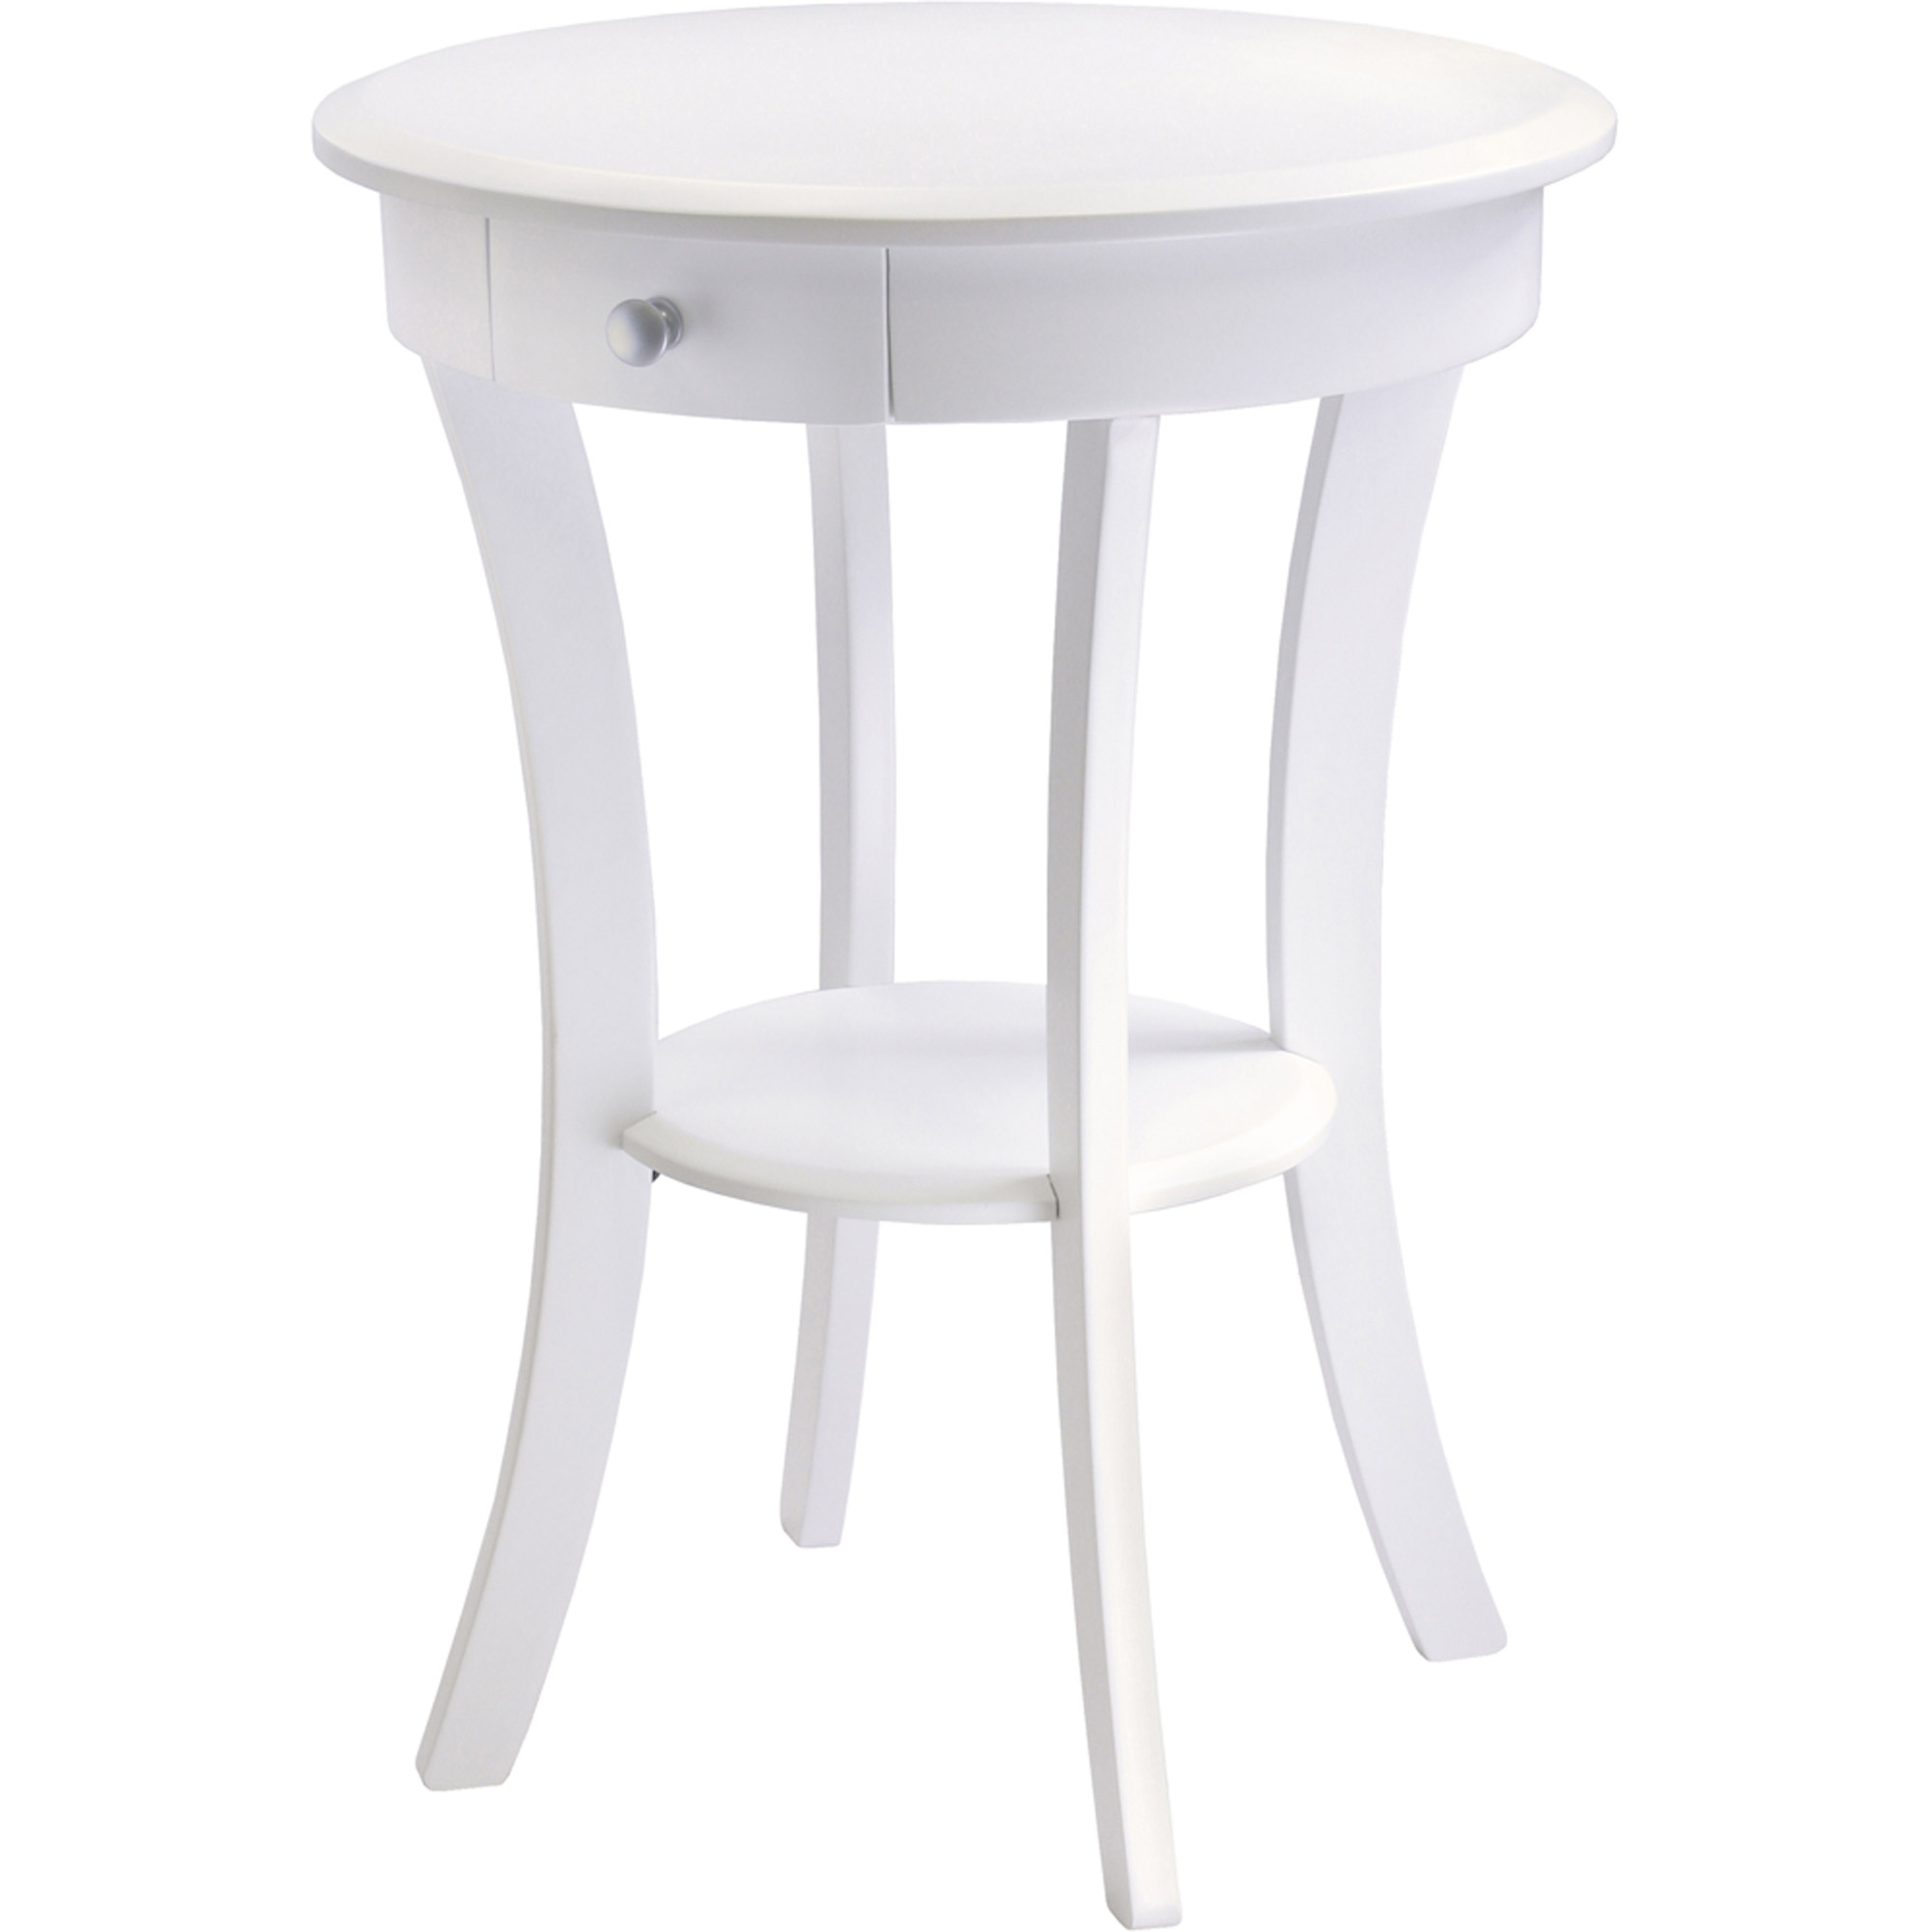 mirror glass probably fantastic awesome country white end tables winsome sasha round accent table stock multiple colors outdoor electric heater lift top kmart kitchen ikea storage